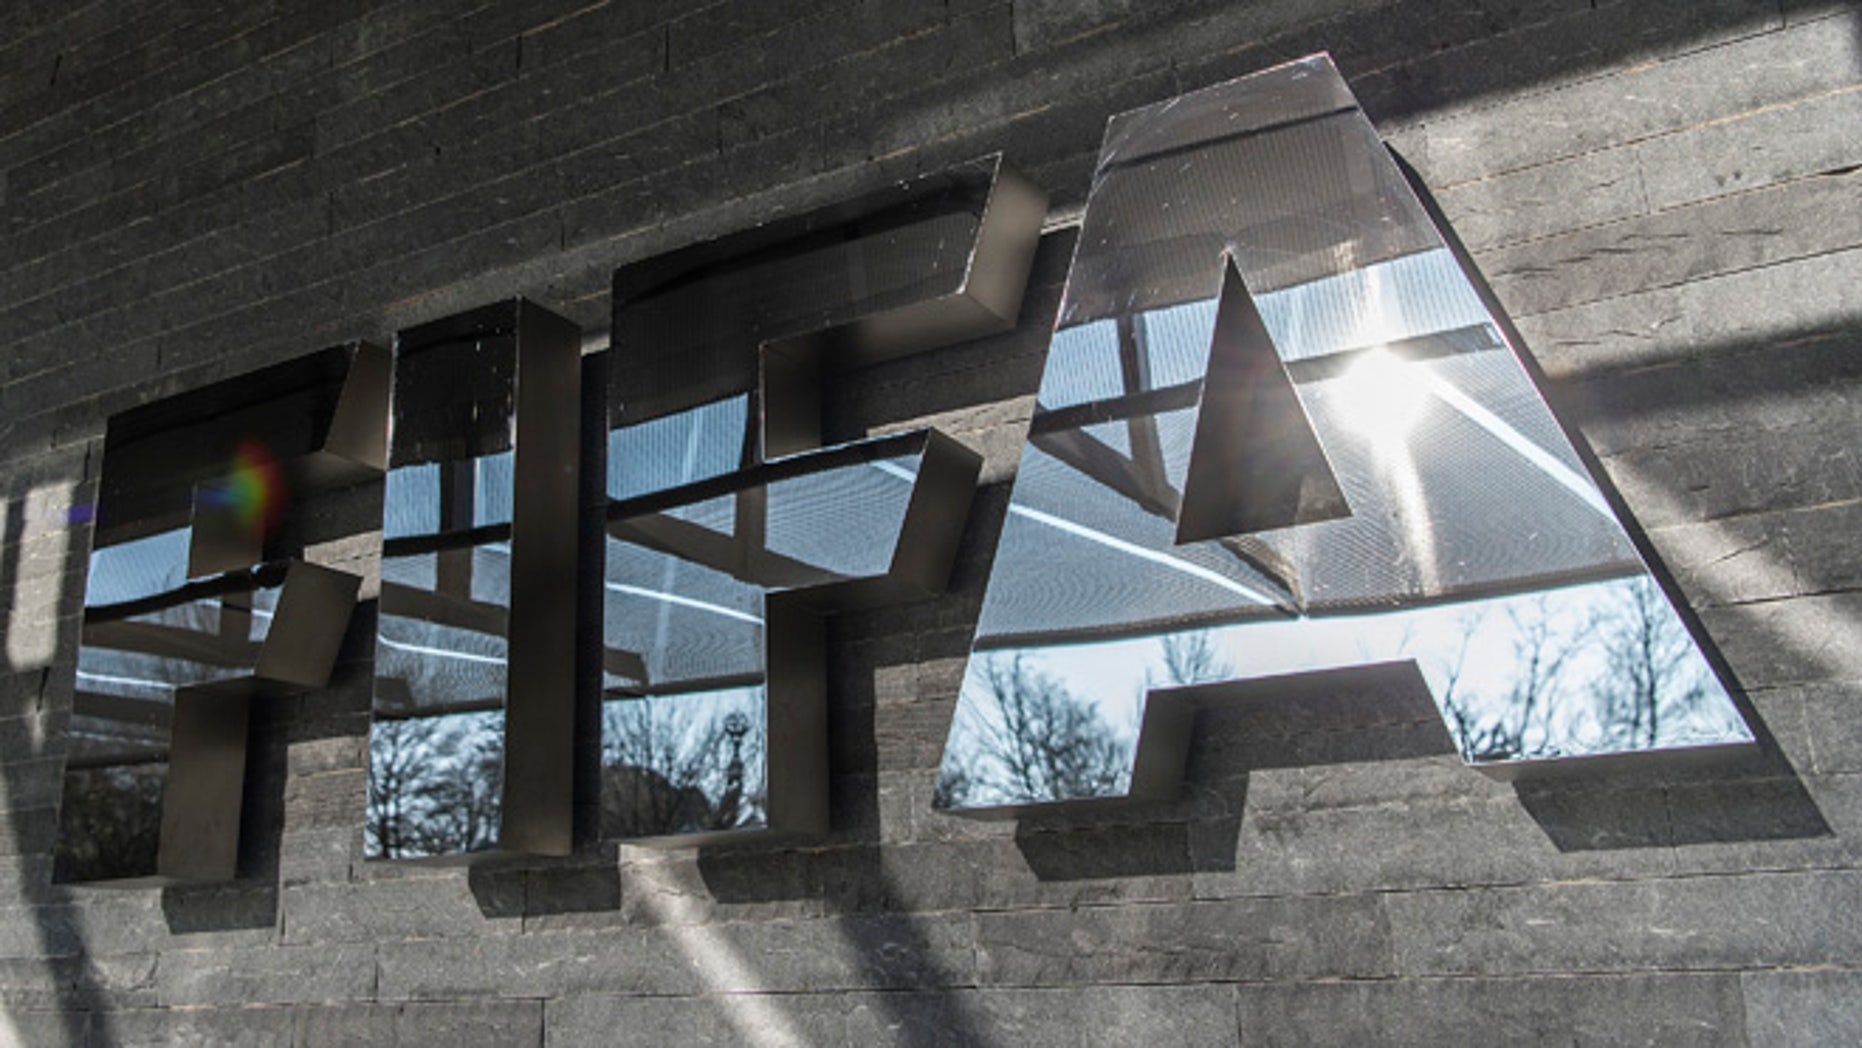 ZURICH, SWITZERLAND - MARCH 18: A FIFA sign at the entrance of its headquarters on March 18, 2016 in Zurich, Switzerland. (Photo by Valeriano Di Domenico/Getty Images)